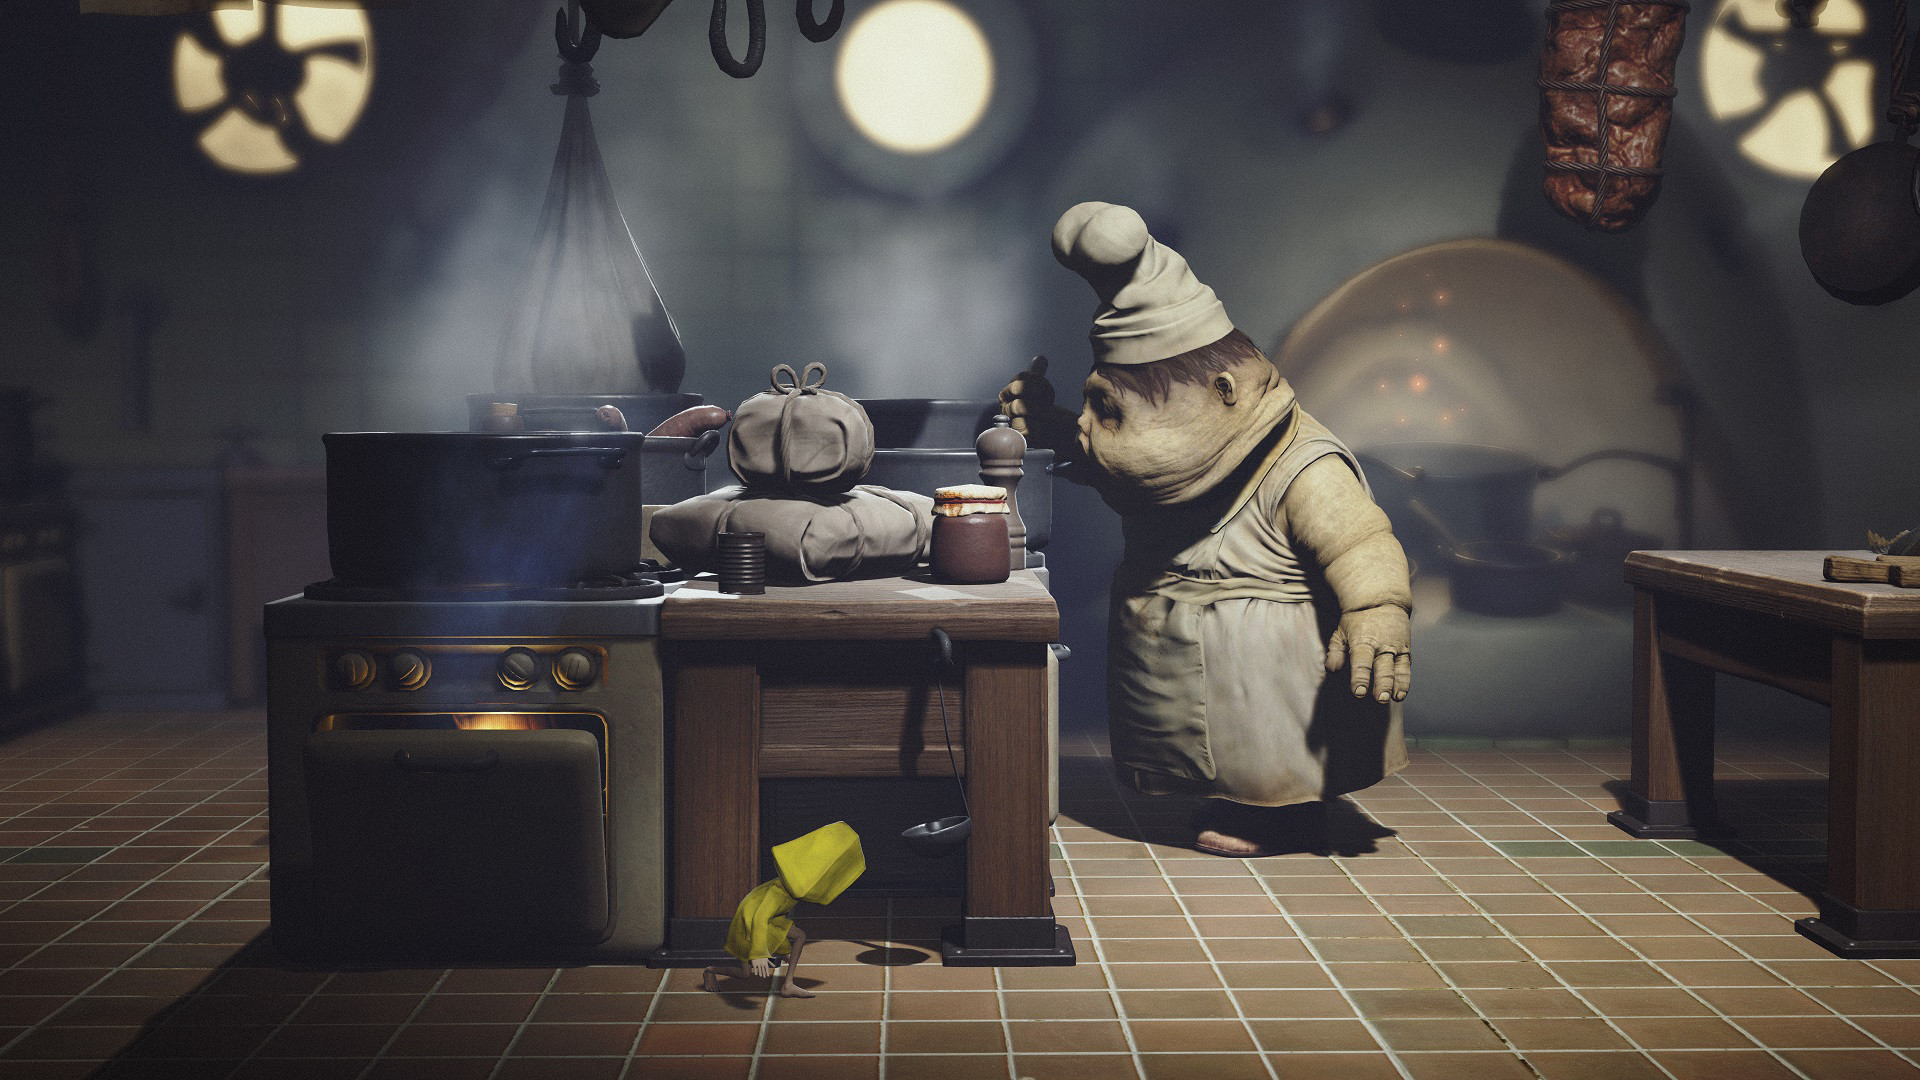 Little Nightmares Runs at 1620P@60FPS on PS4 Pro, 1080P@30 on PS4